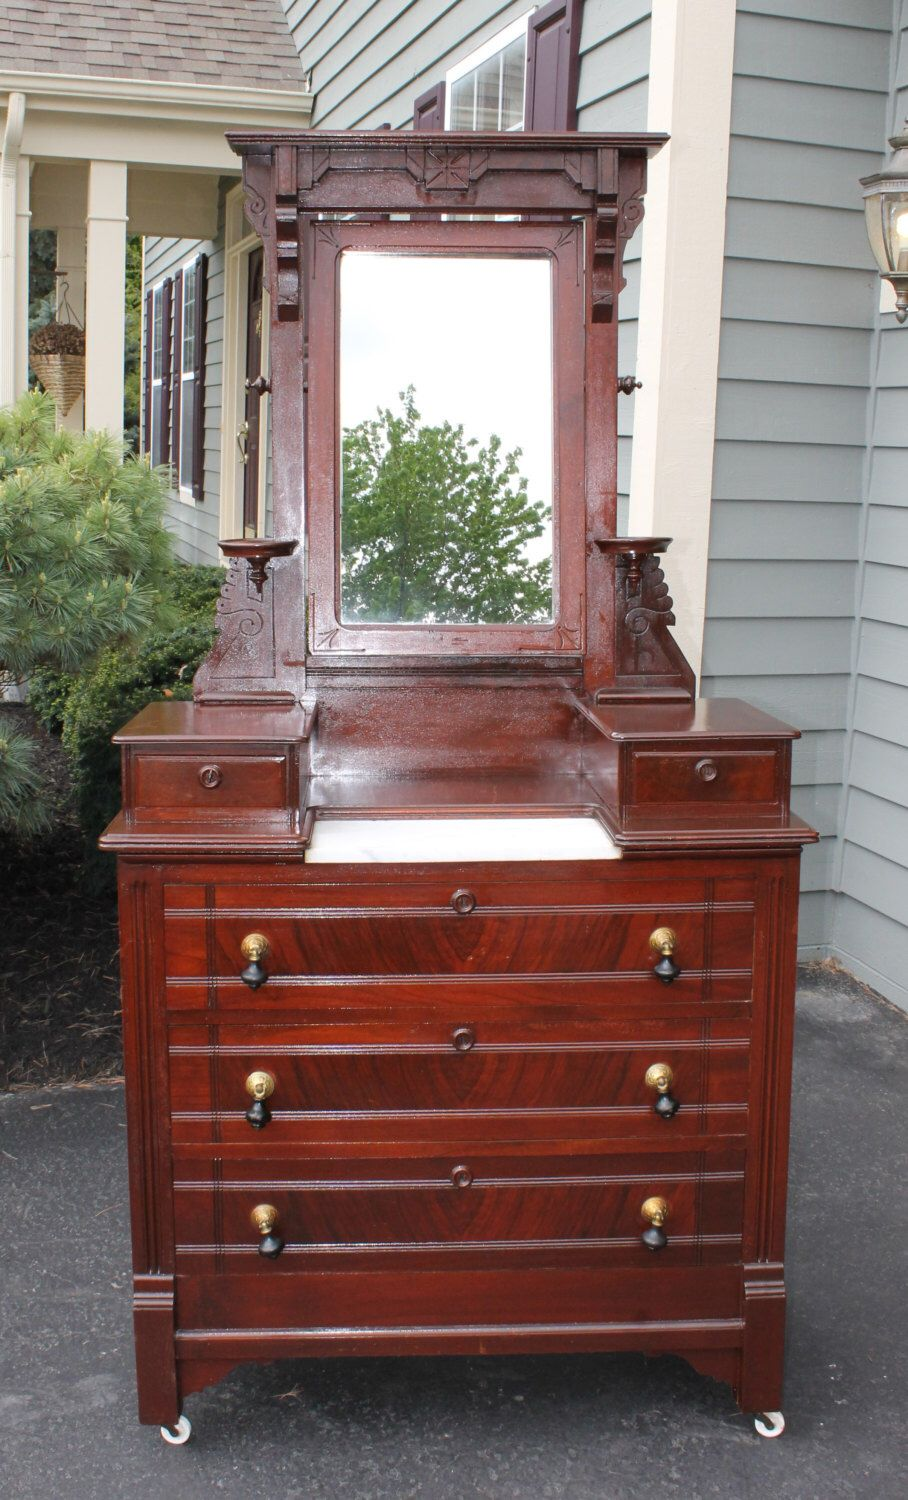 Etsy Antique Furniture - Diy Modern Furniture Check more at  http://searchfororangecountyhomes.com/etsy-antique-furniture/ - Etsy Antique Furniture - Diy Modern Furniture Check More At Http